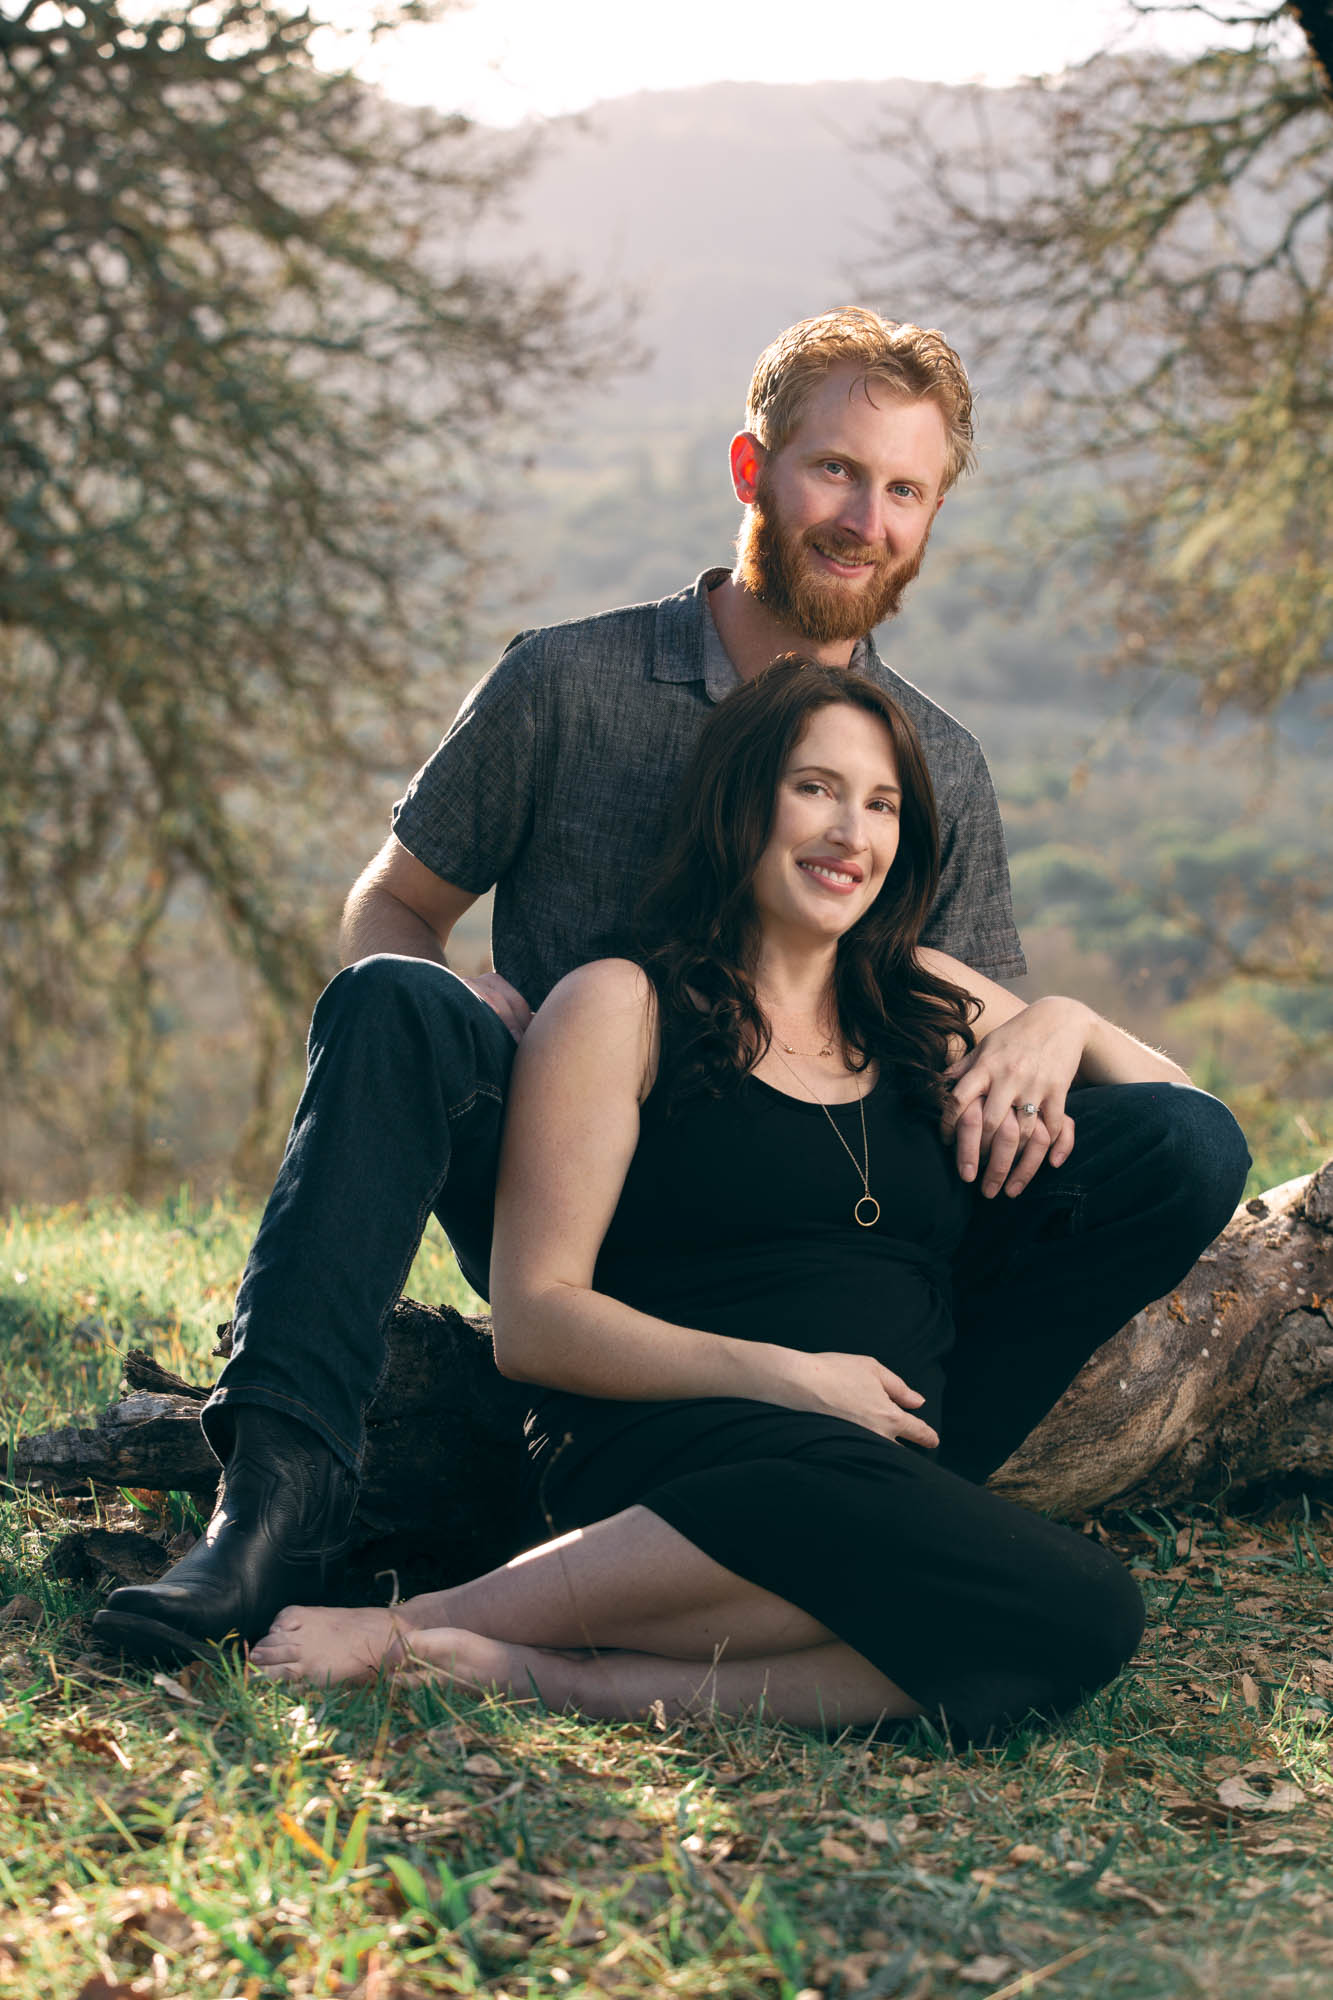 Abbey's Maternity Photo shoot with Portrait Photographer Jason Guy